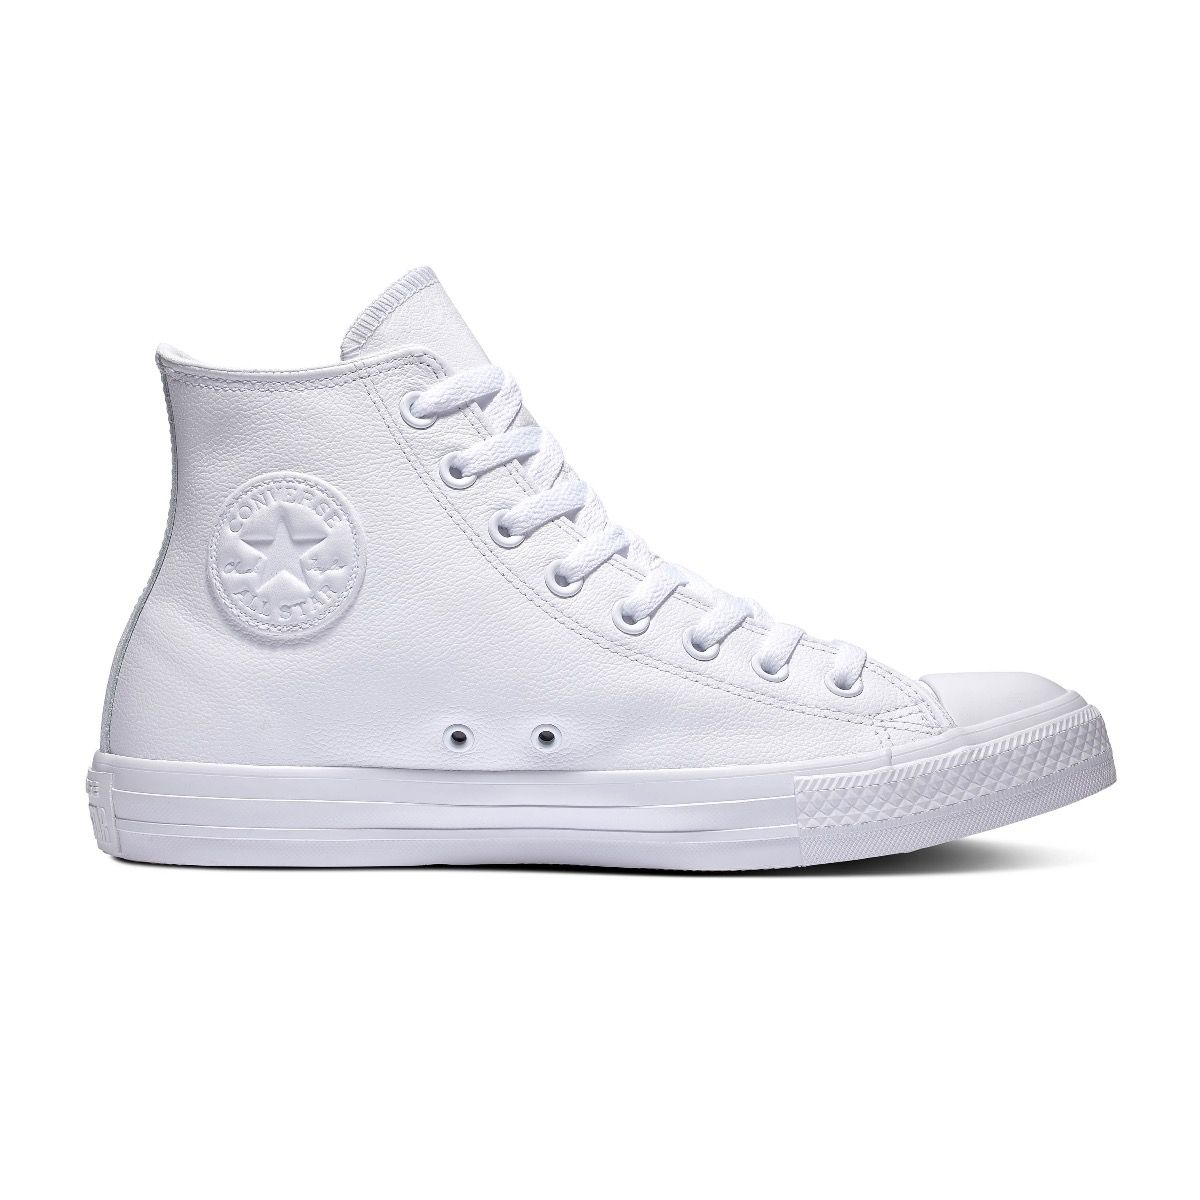 Converse All Stars Leather Hoog 1T406 Wit maat